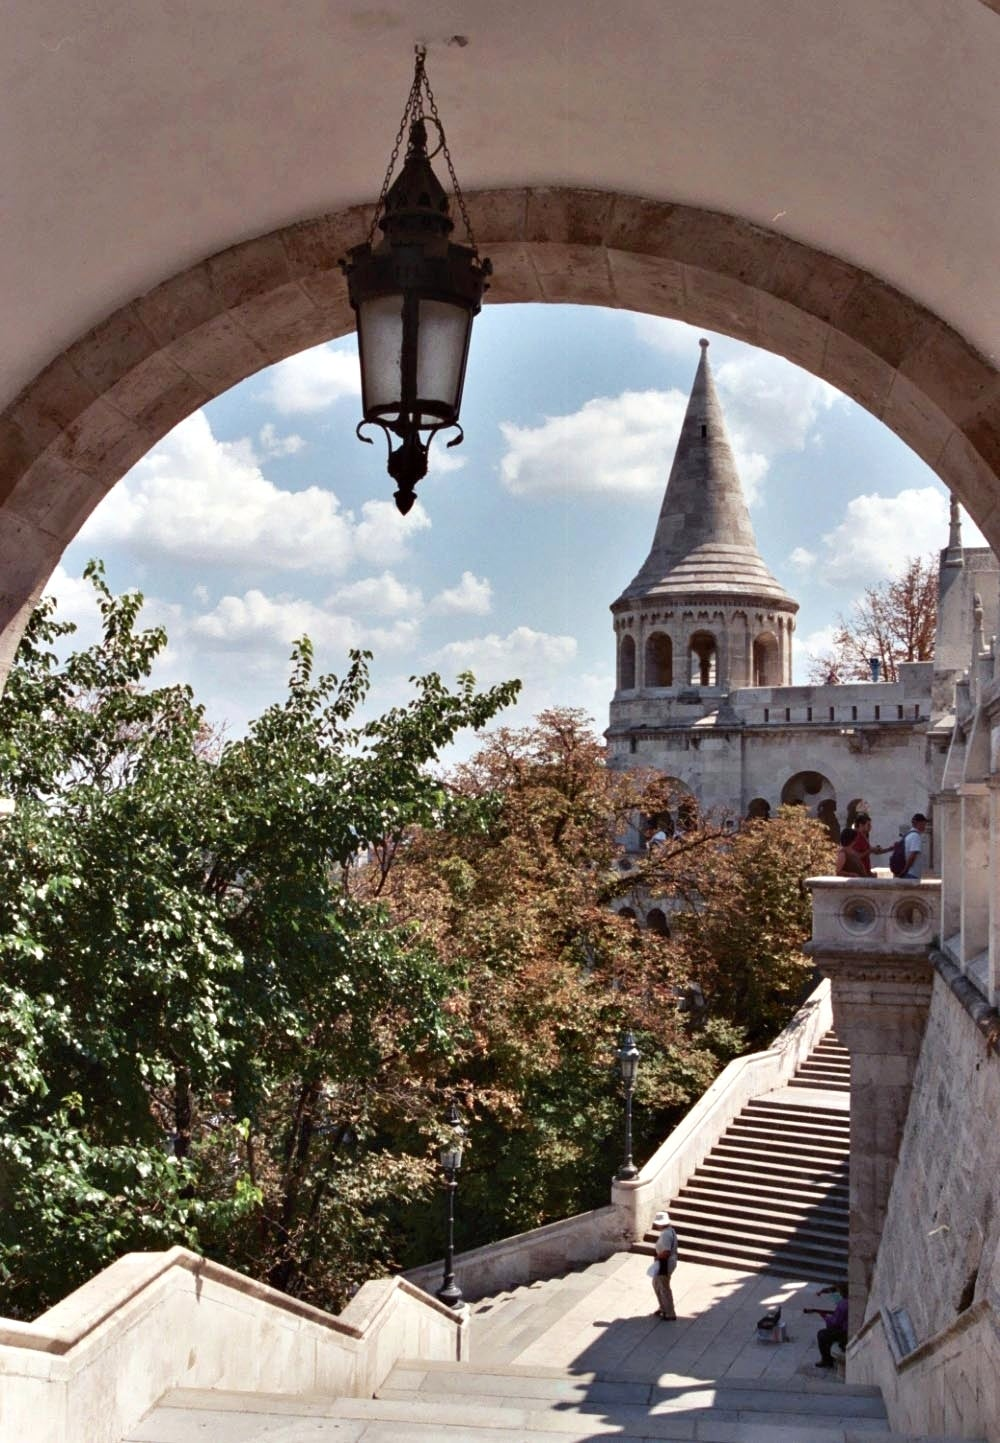 Arch in Fisherman's Bastion